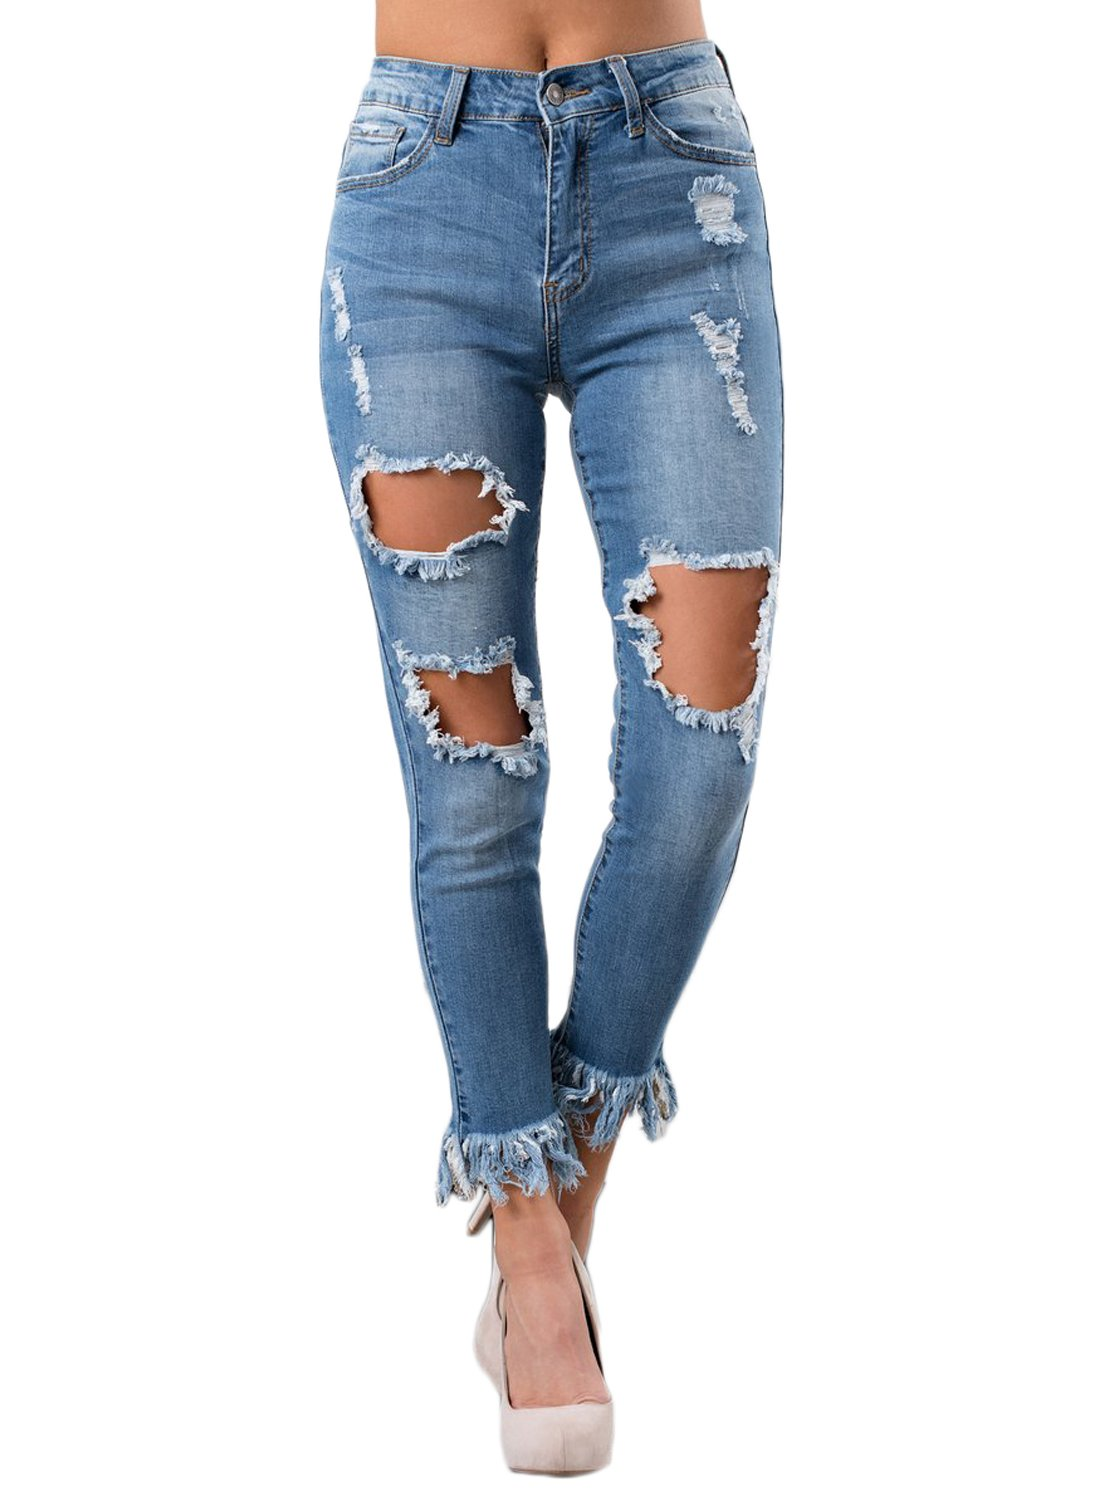 Dokotoo Womens Summer Ripped Distressed Destroyed Hole Pockets Mid Waist Skinny Wash Denim Jeans Pants X-Large